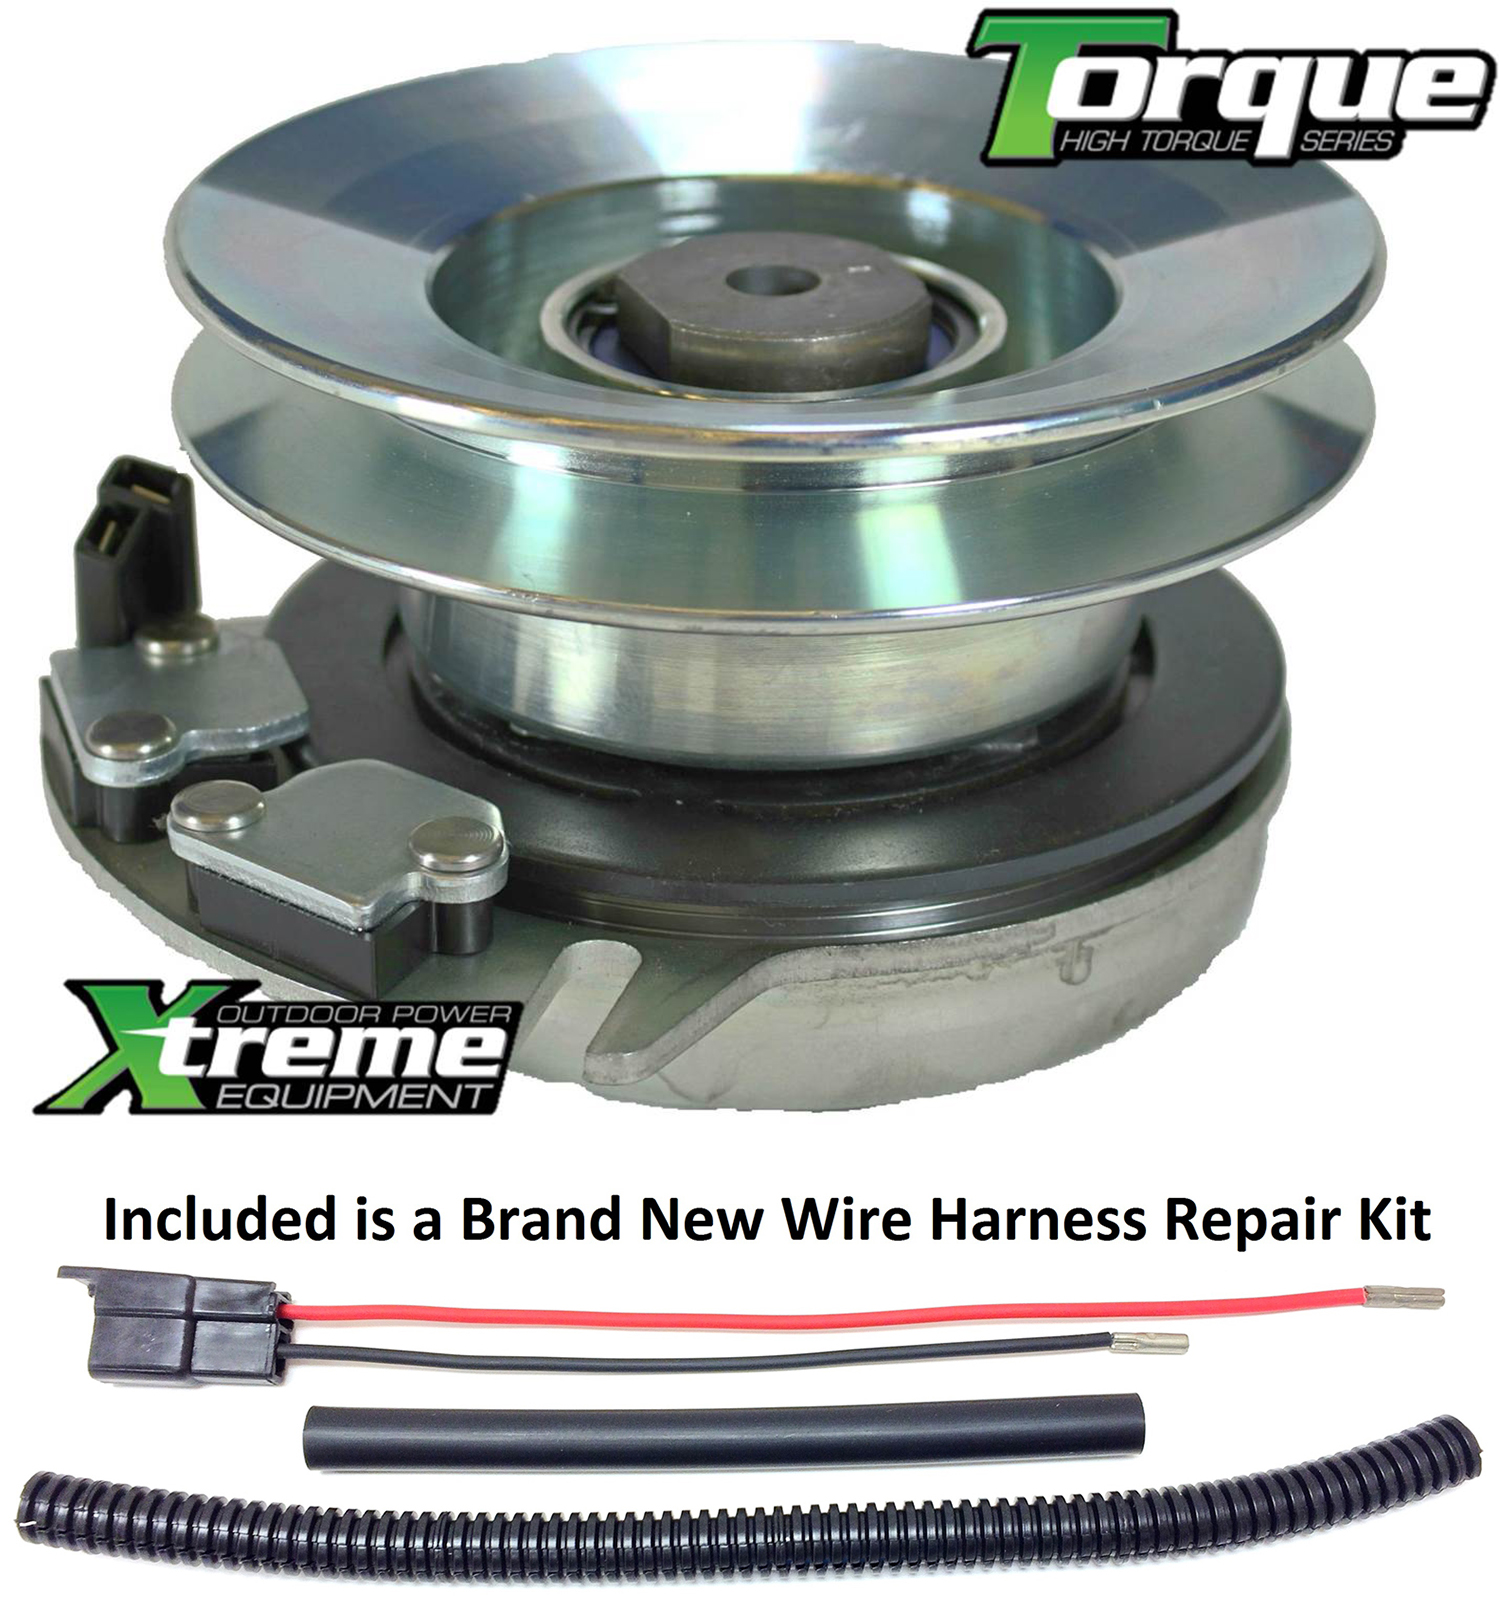 bundle 2 items pto electric blade clutch, wire harness repair kit replaces cub cadet lt1042 electric pto blade clutch w wire harness repair kit diesel wire harness pto wire harness #14